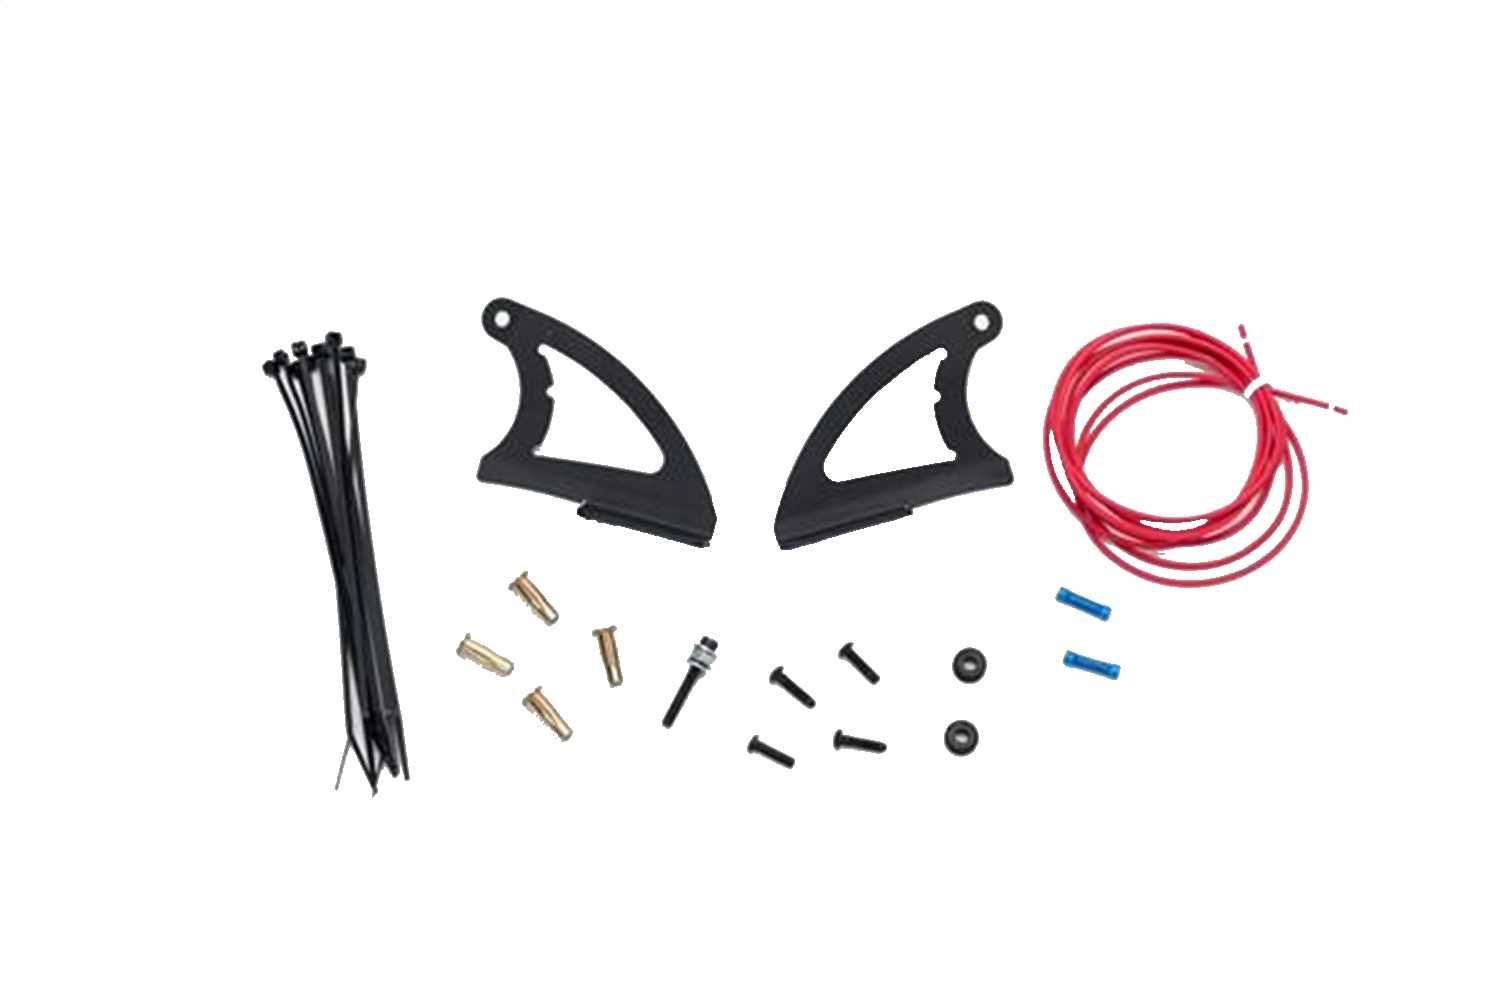 Luminix Light Bar Wiring Harness And Roof Bracket Kit Southern Design Guide Putco 2135